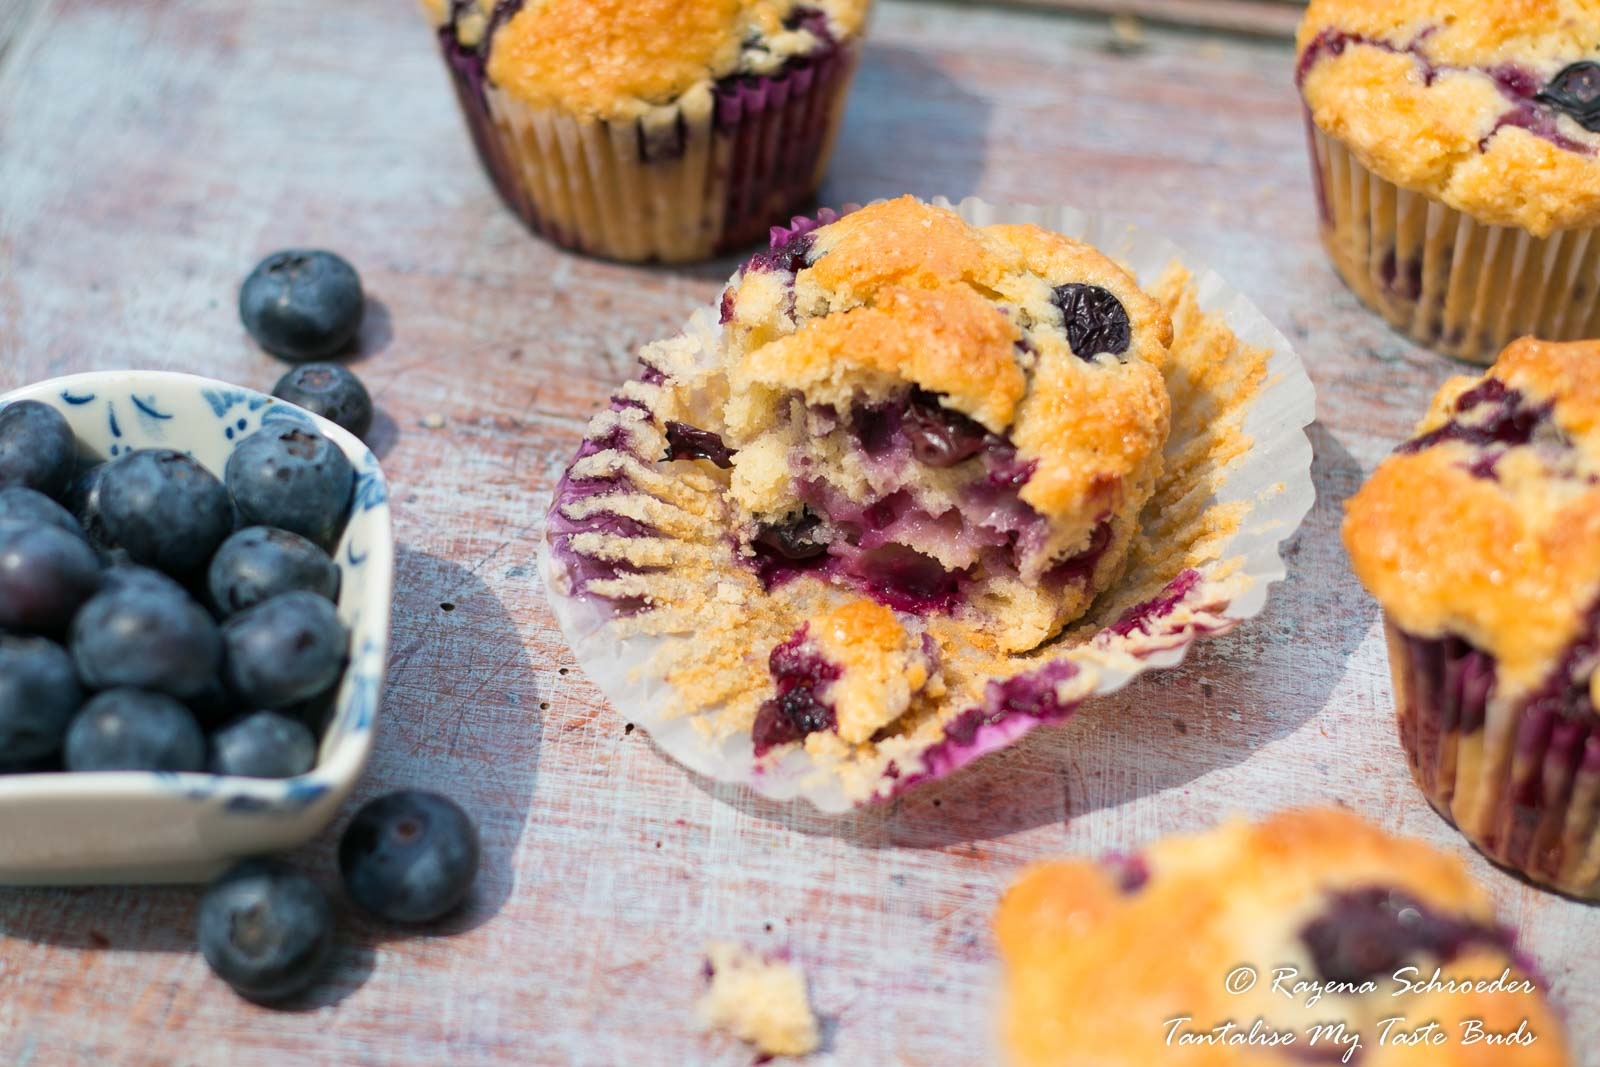 Blueberry muffins broken to reveal the soft crumb and moist texture